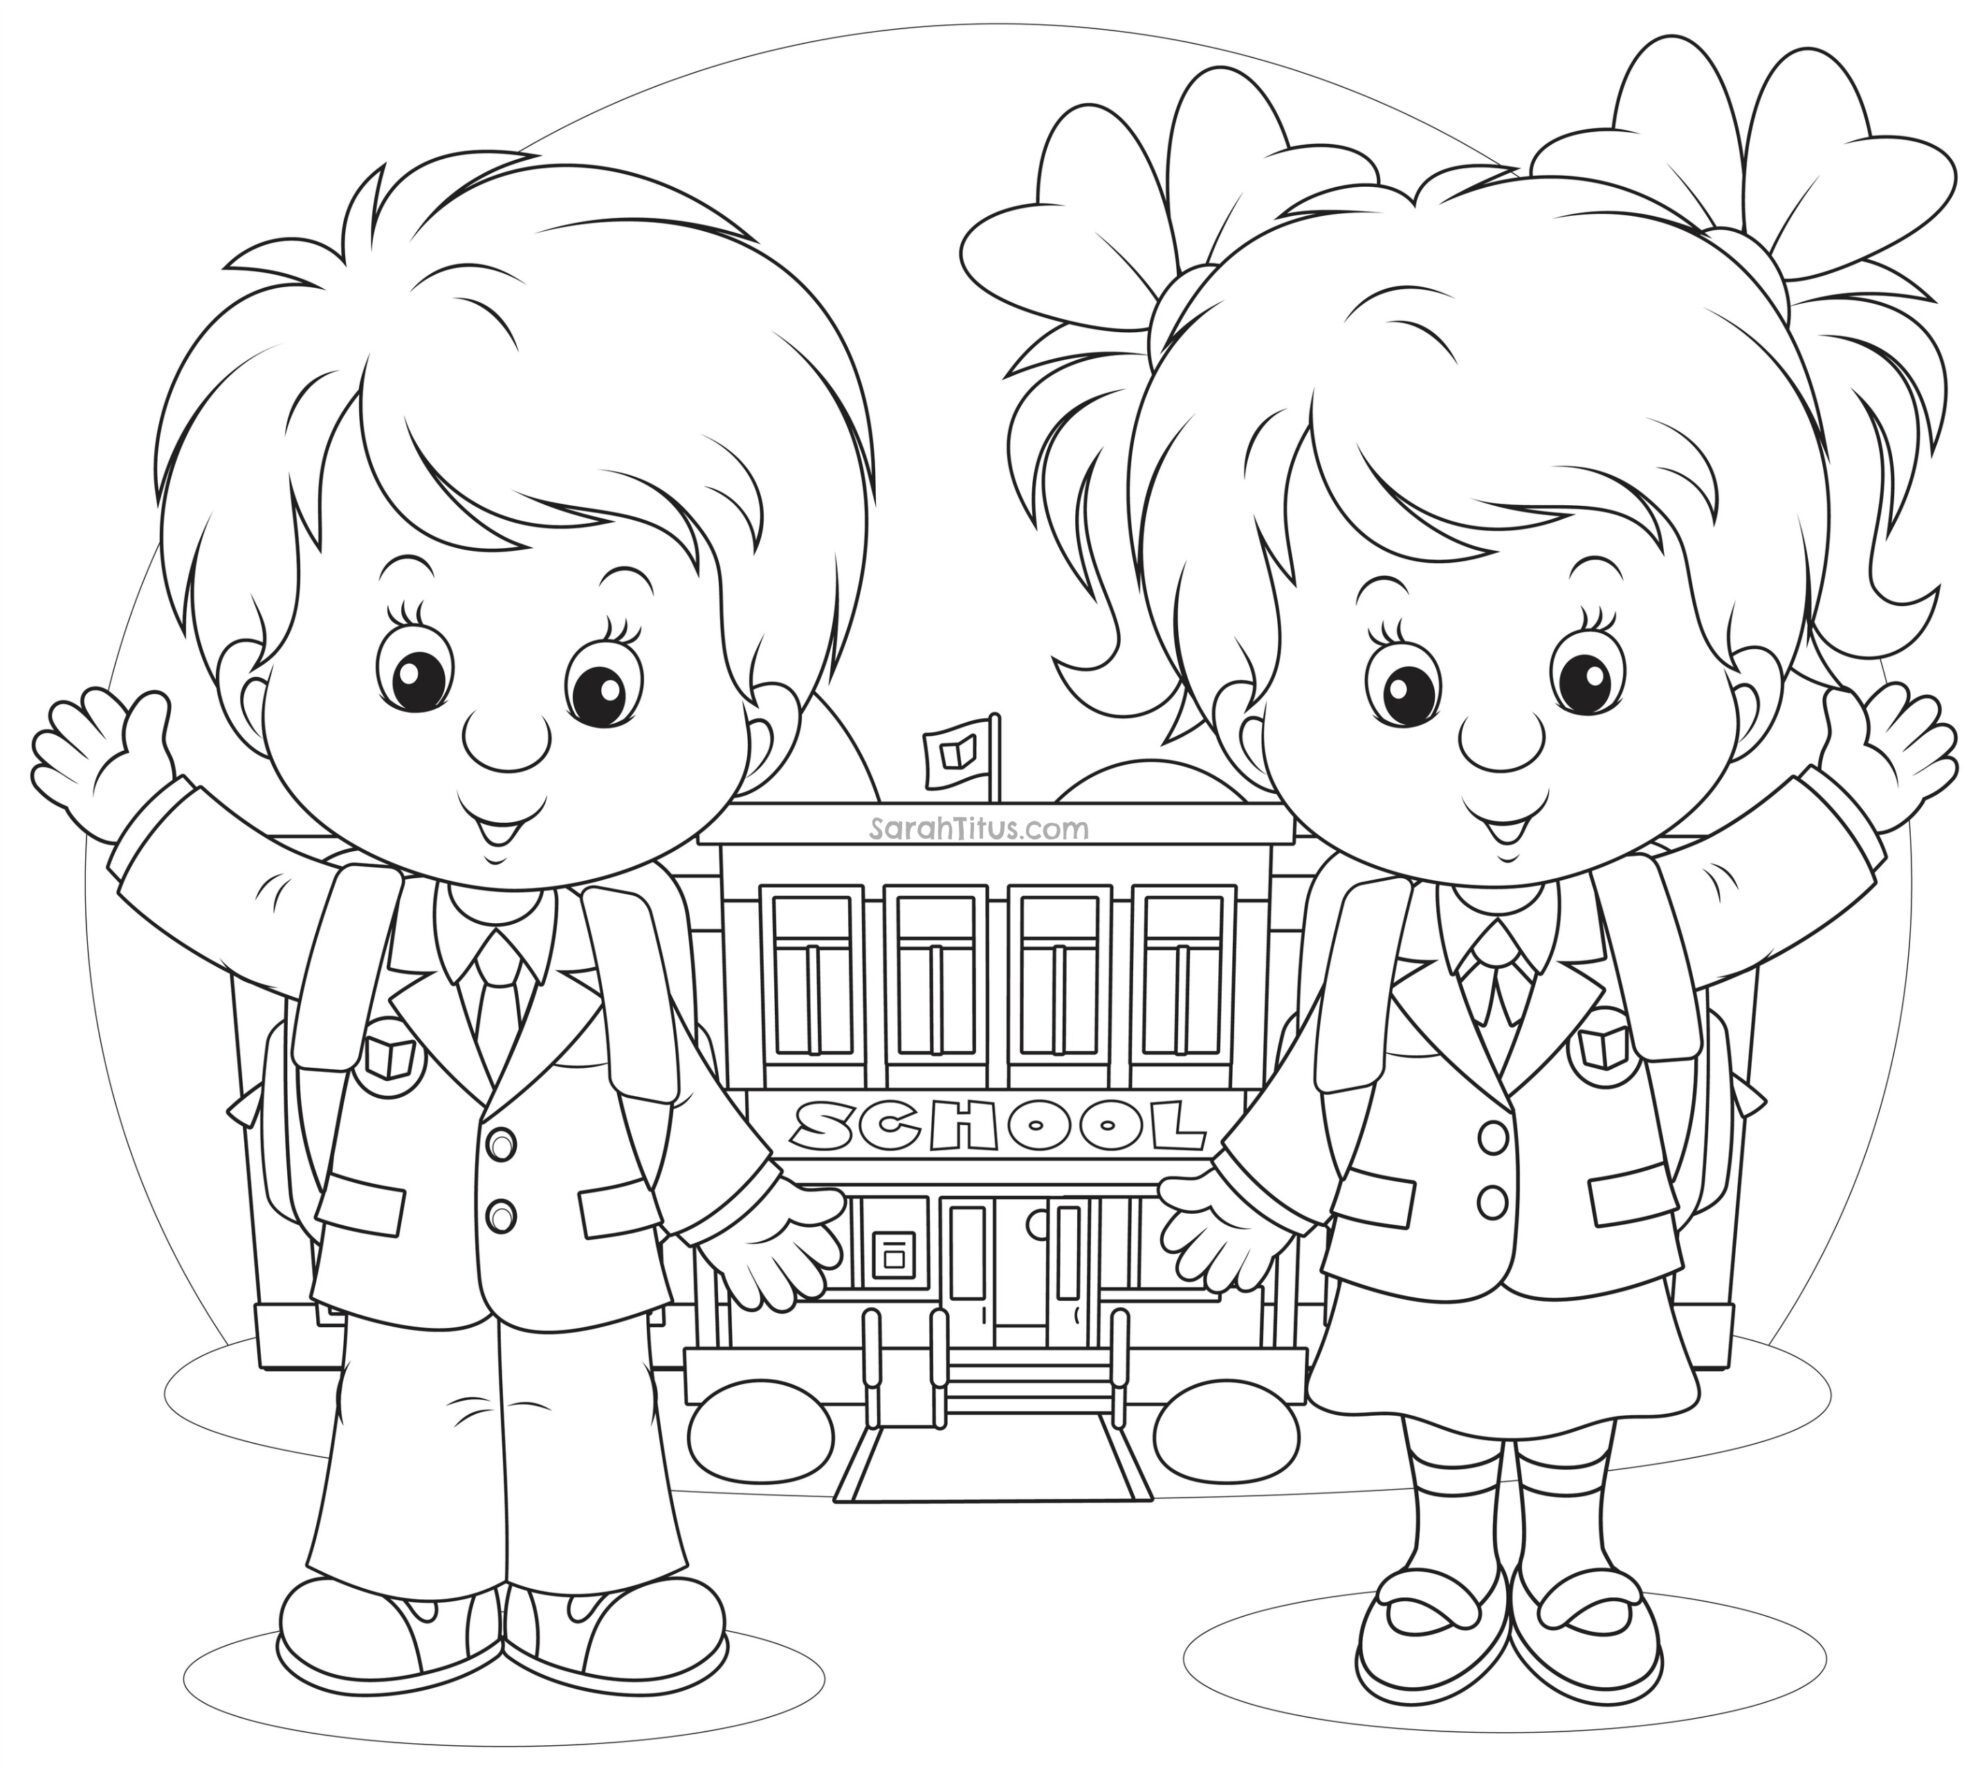 school images coloring pages - photo#20